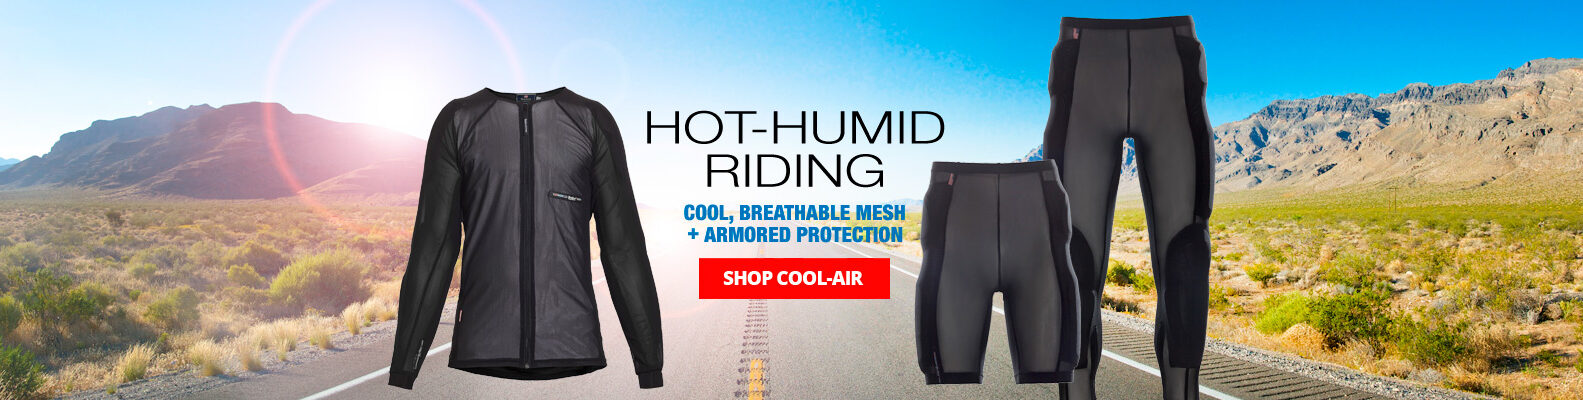 Hot and Humid Riding slider graphic